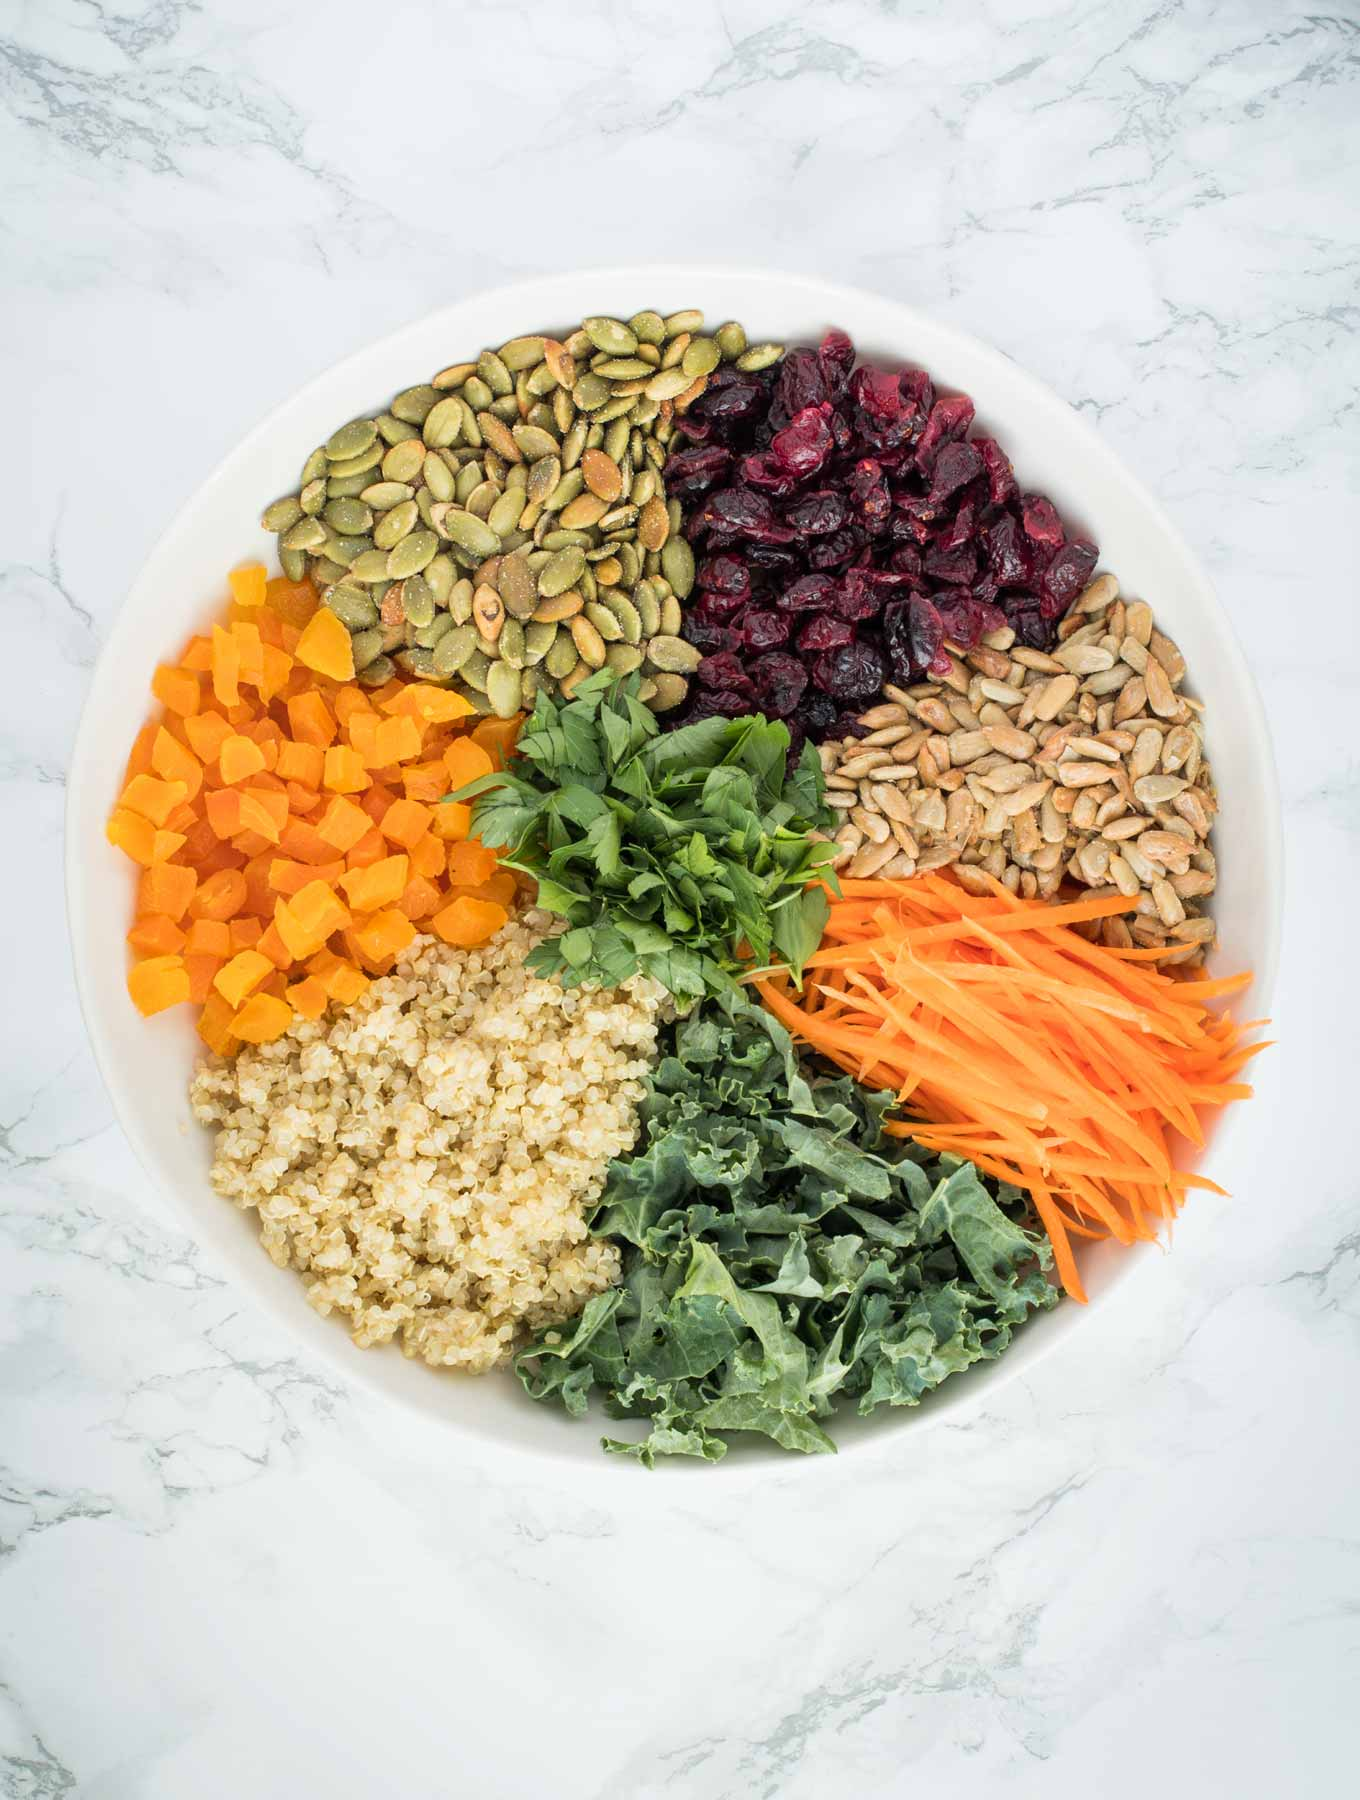 A bowl full of quinoa, dried fruit, seeds, kale, carrots and parsley.